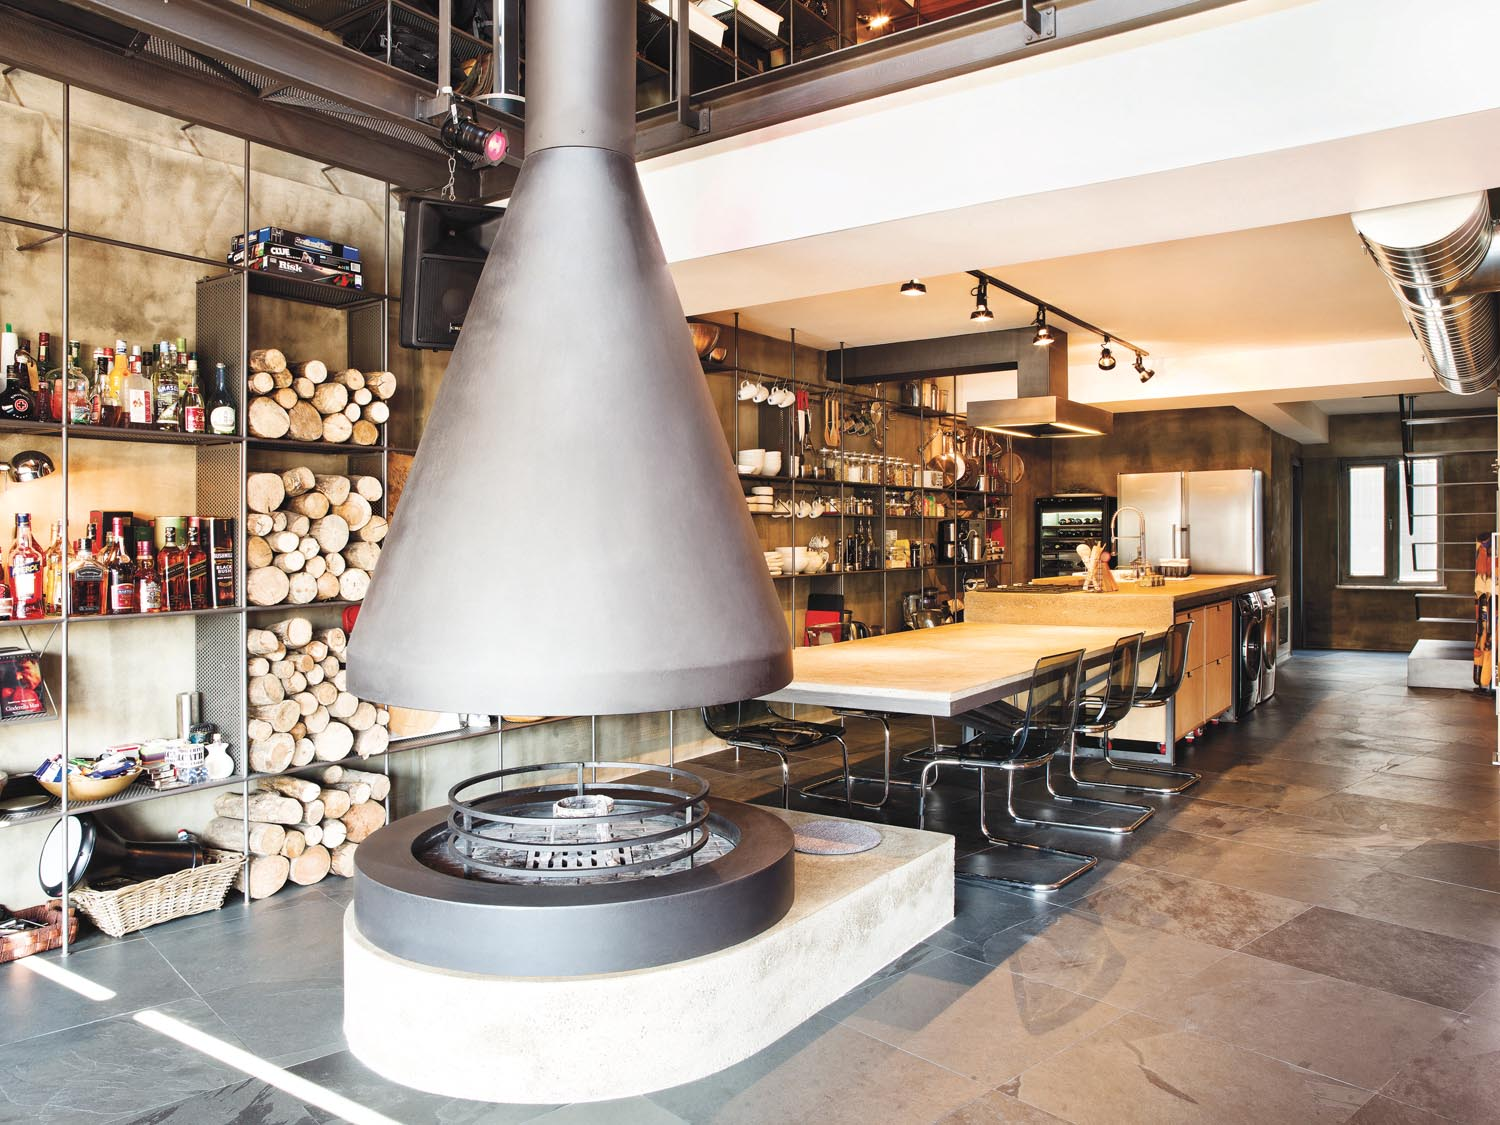 A unique fireplace turns up the heat in the living room and kitchen